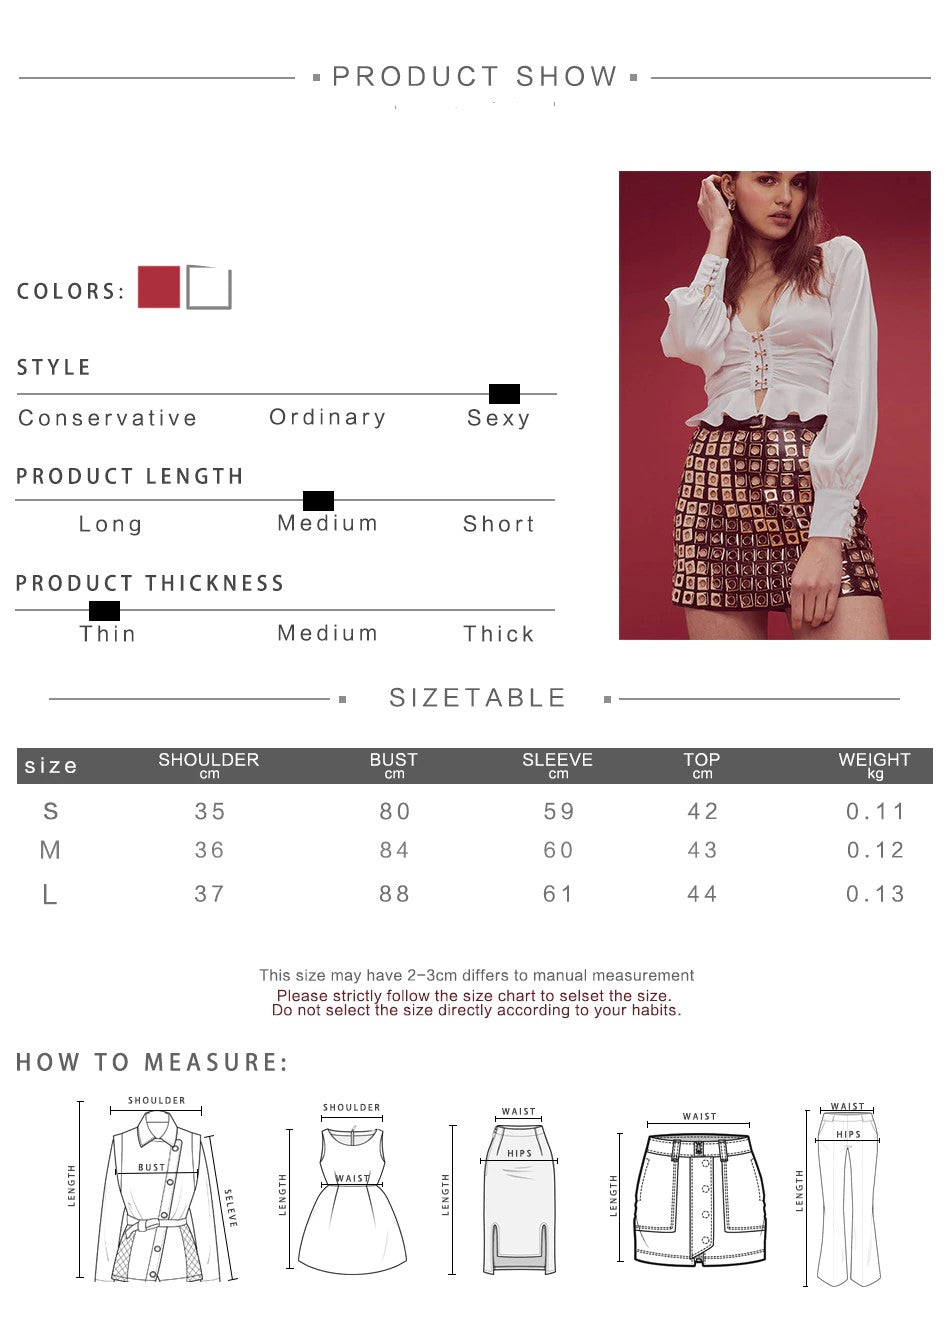 irhaz Women Harajuku Short Ruffles Sleeve Shirt Crop Top Sexy V-Neck Street Wear Solid Femme Long Sleeve T Shirt New